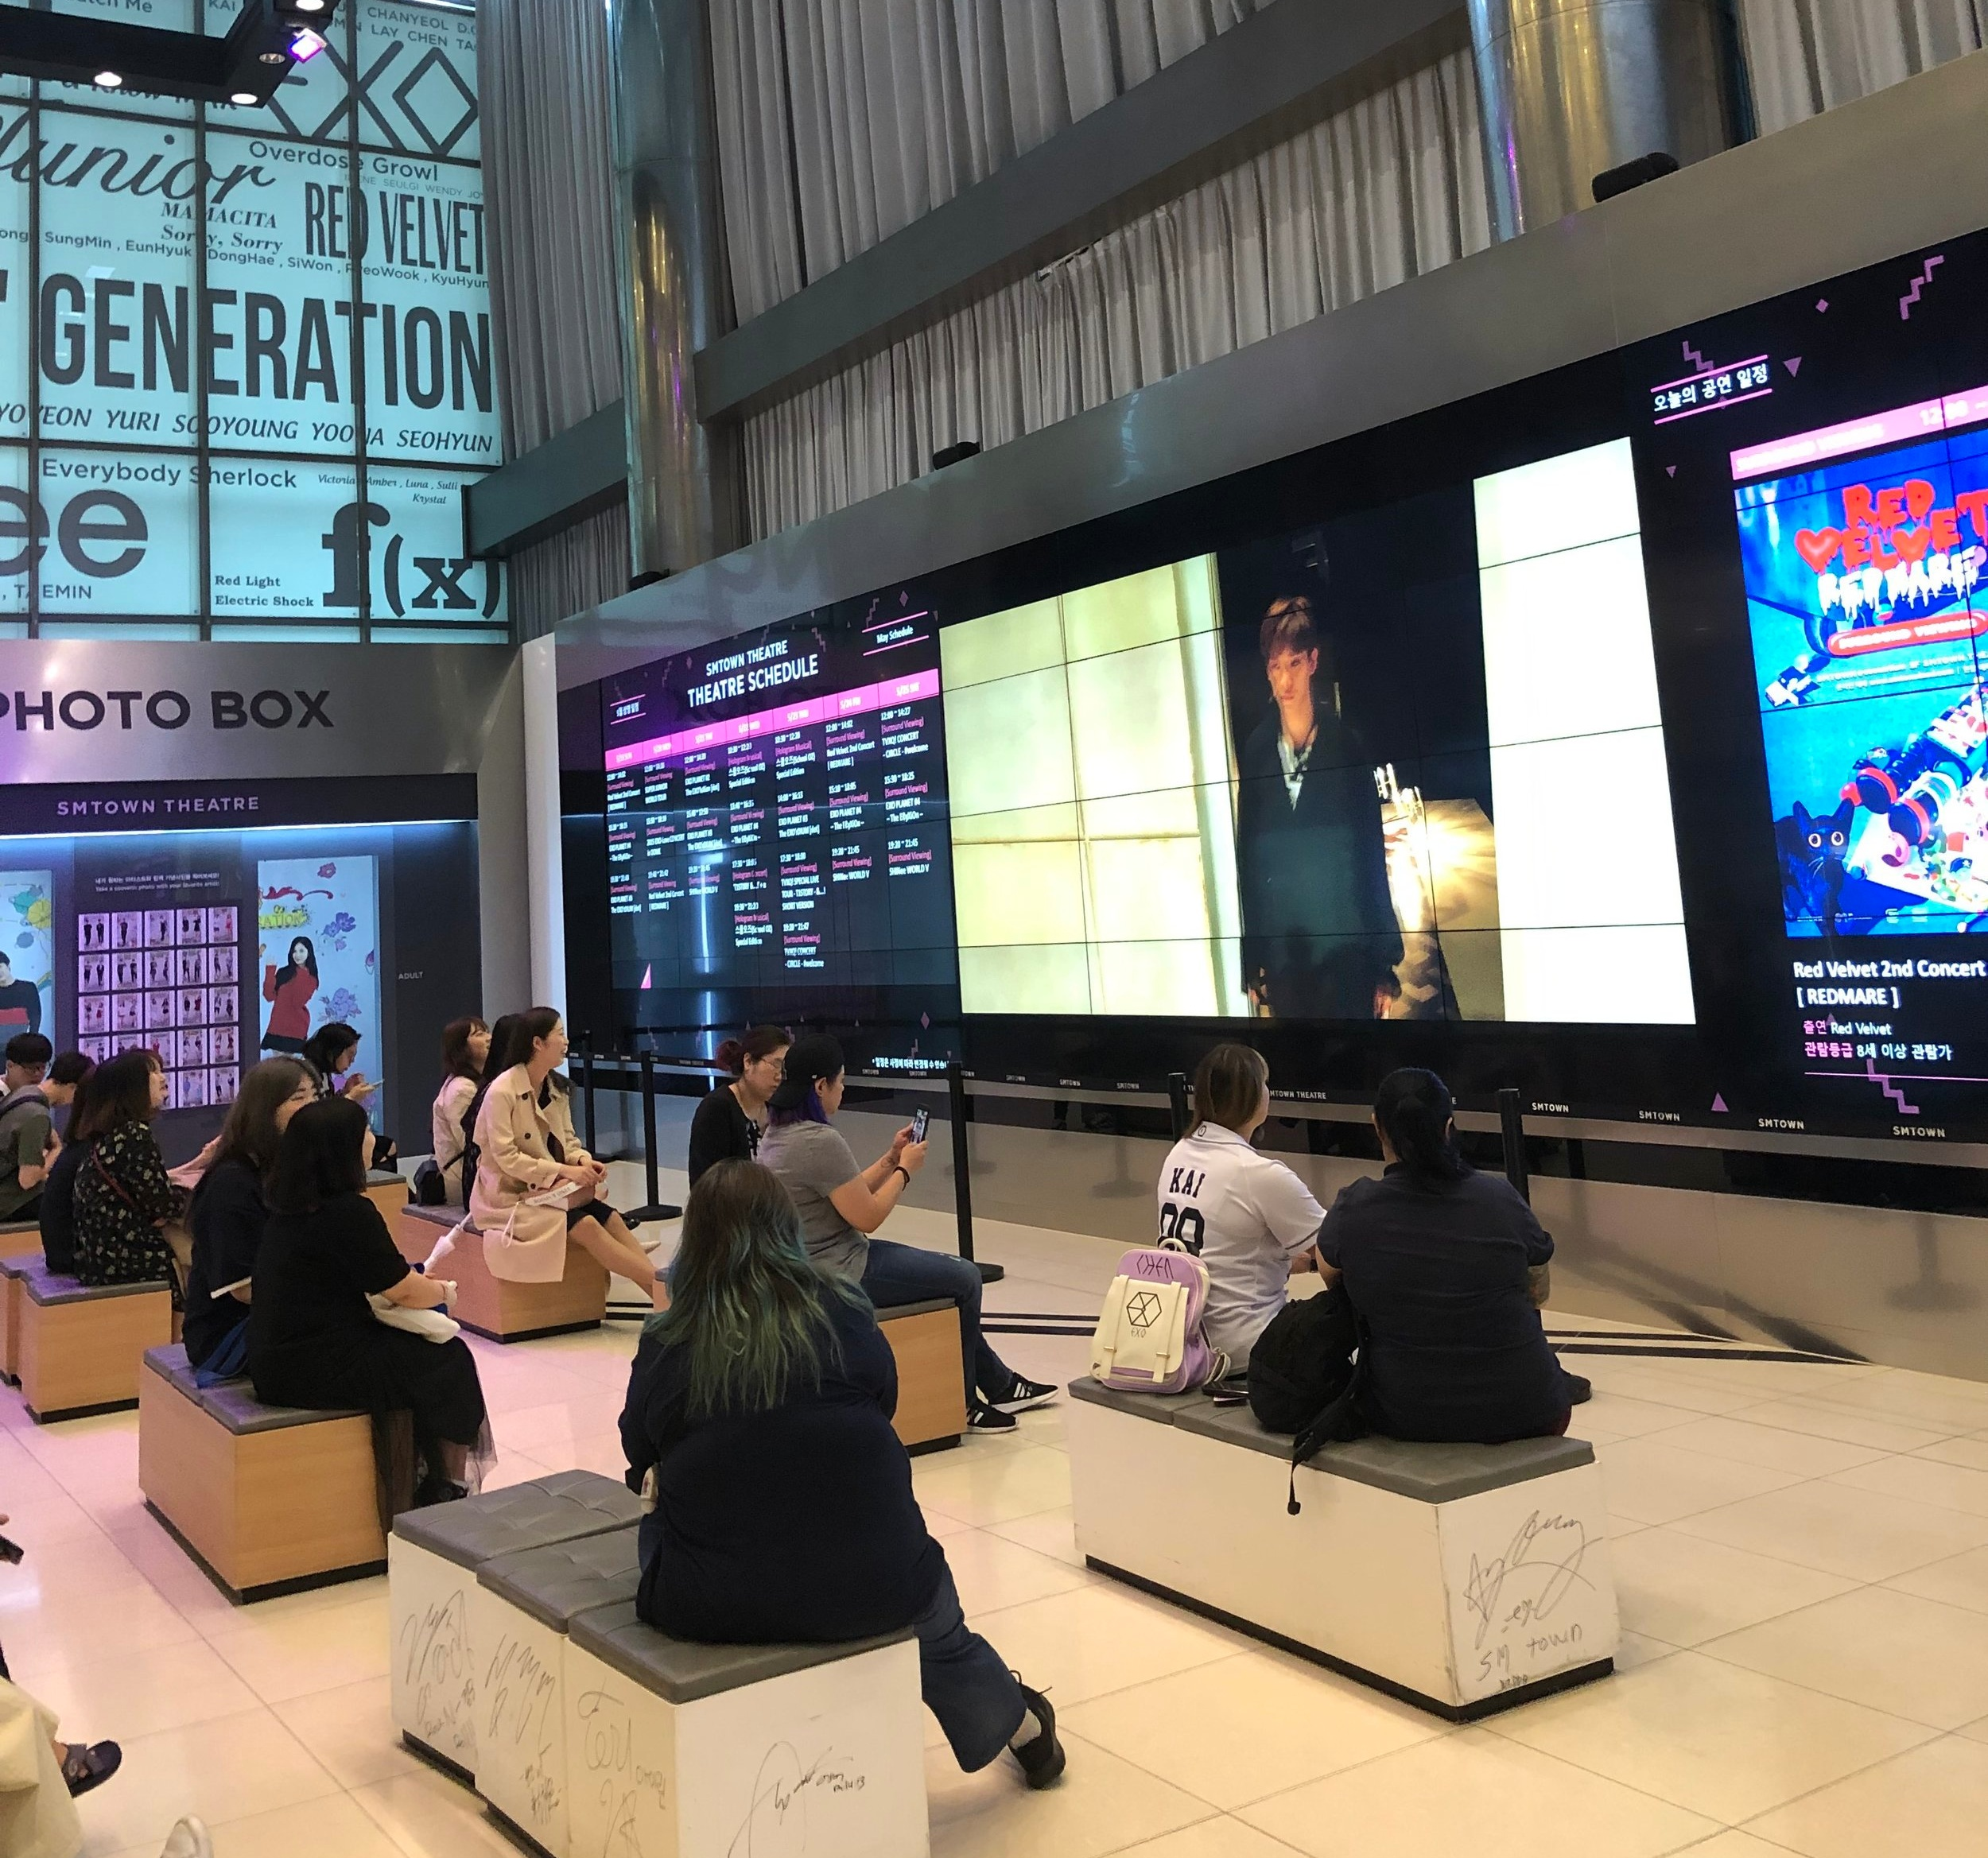 Fans waiting for the show to start (SMTOWN Museum)